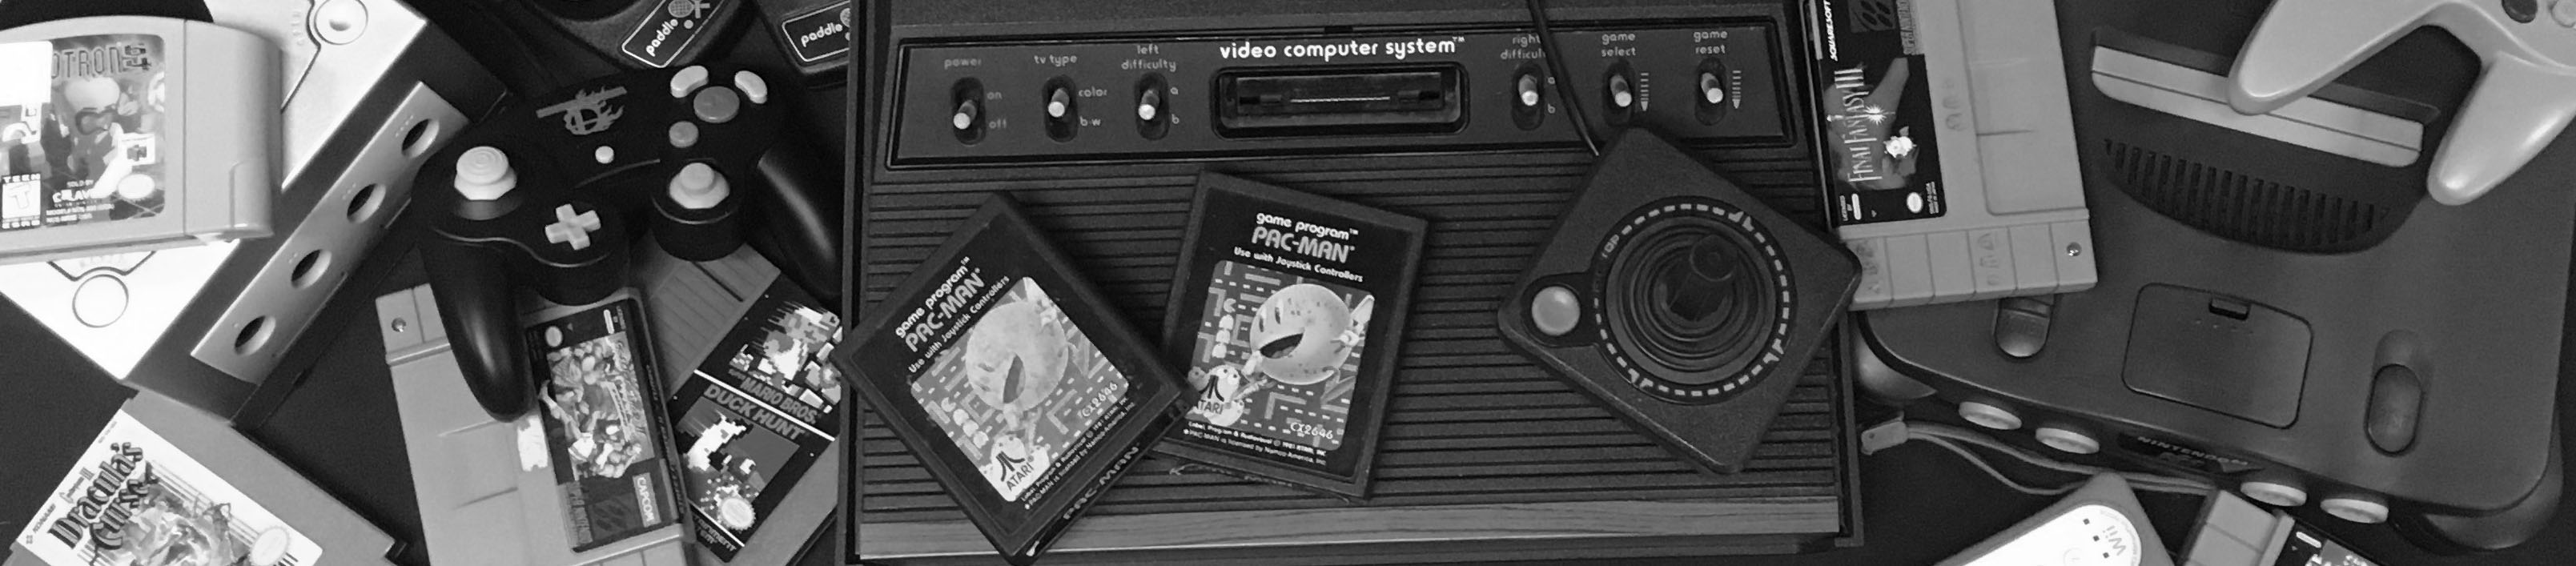 Banner with image of old consoles and games